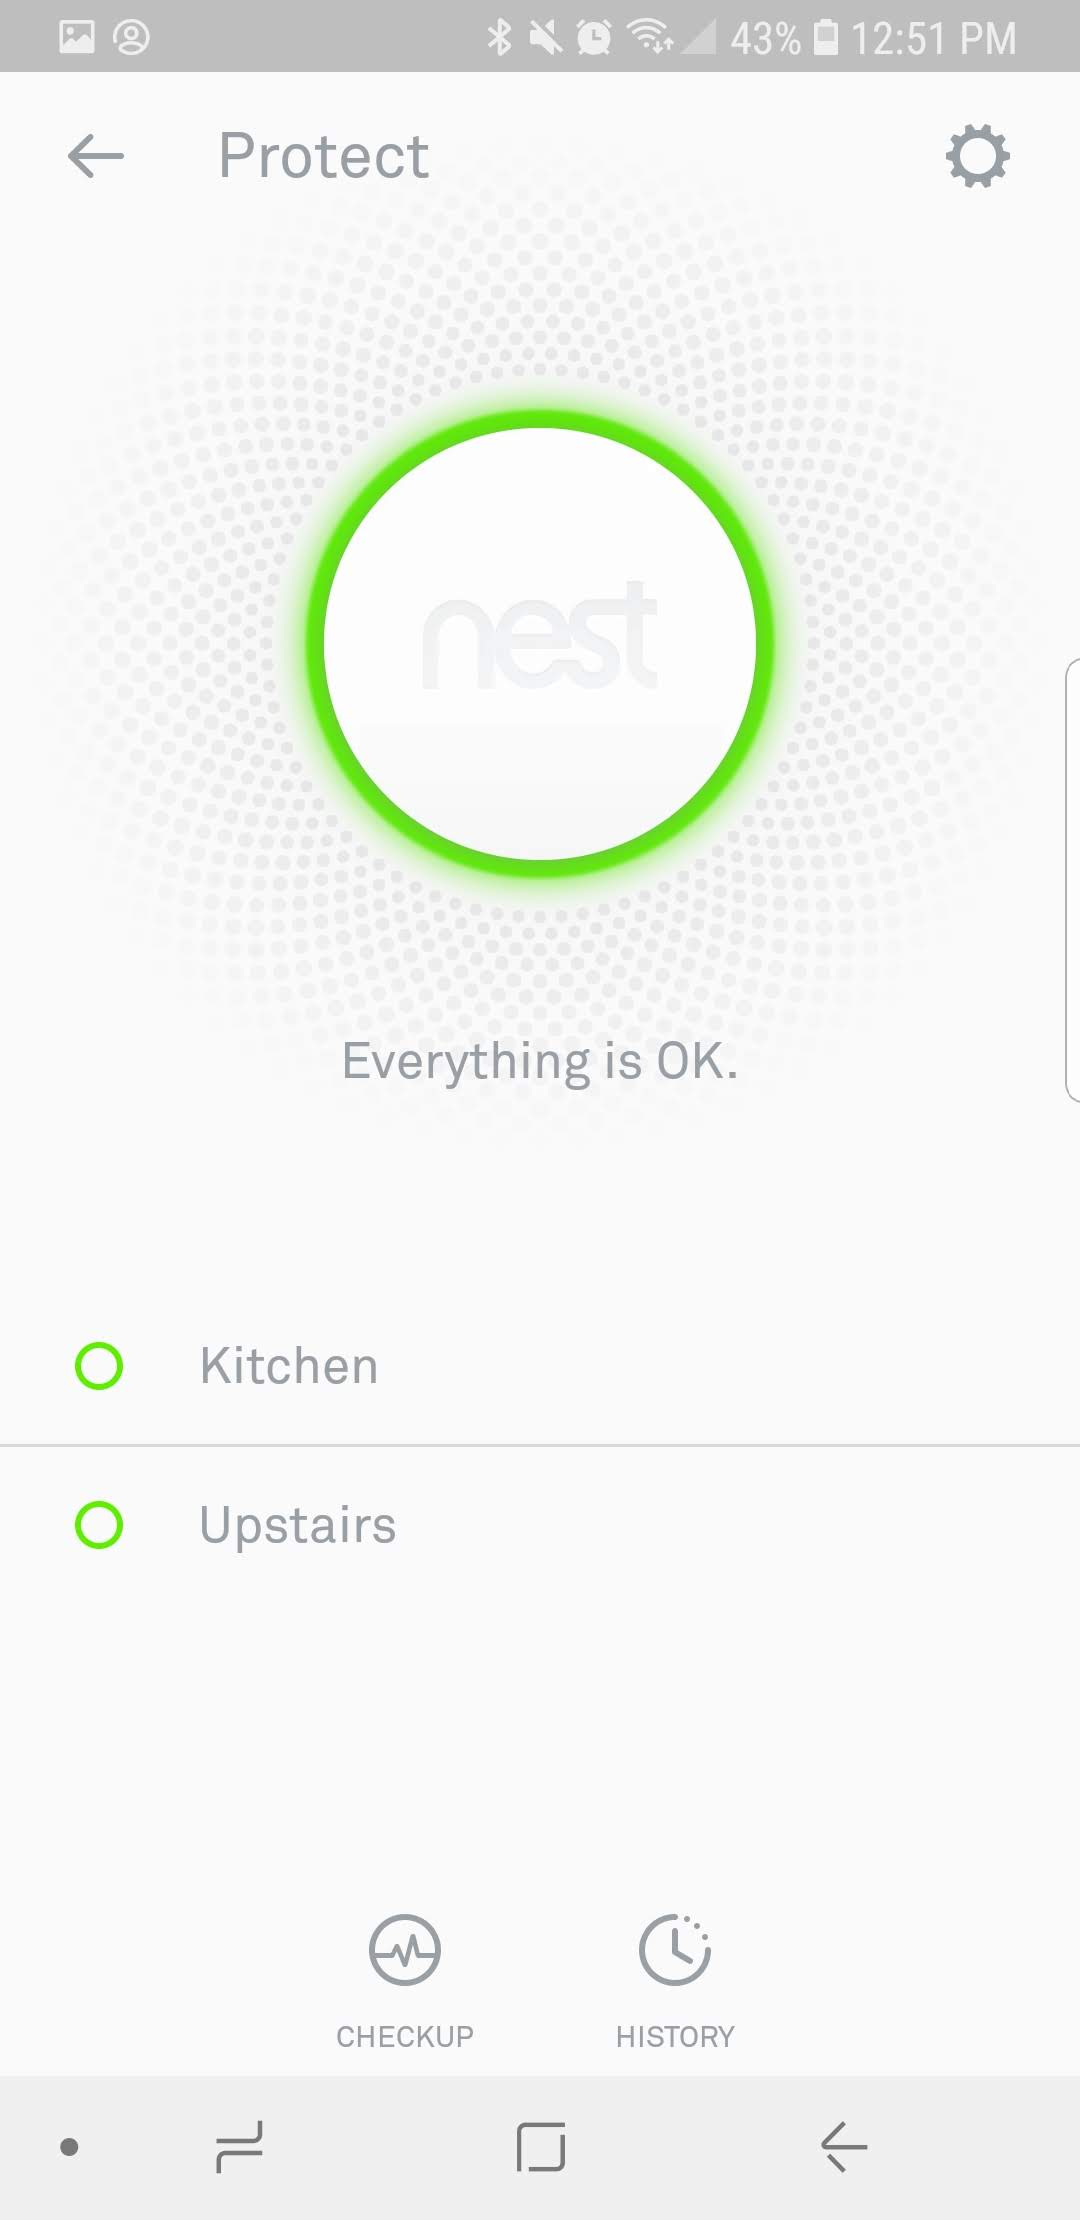 3. Nest Smoke Detector Batteries are properly installed and confirmed by checkup.